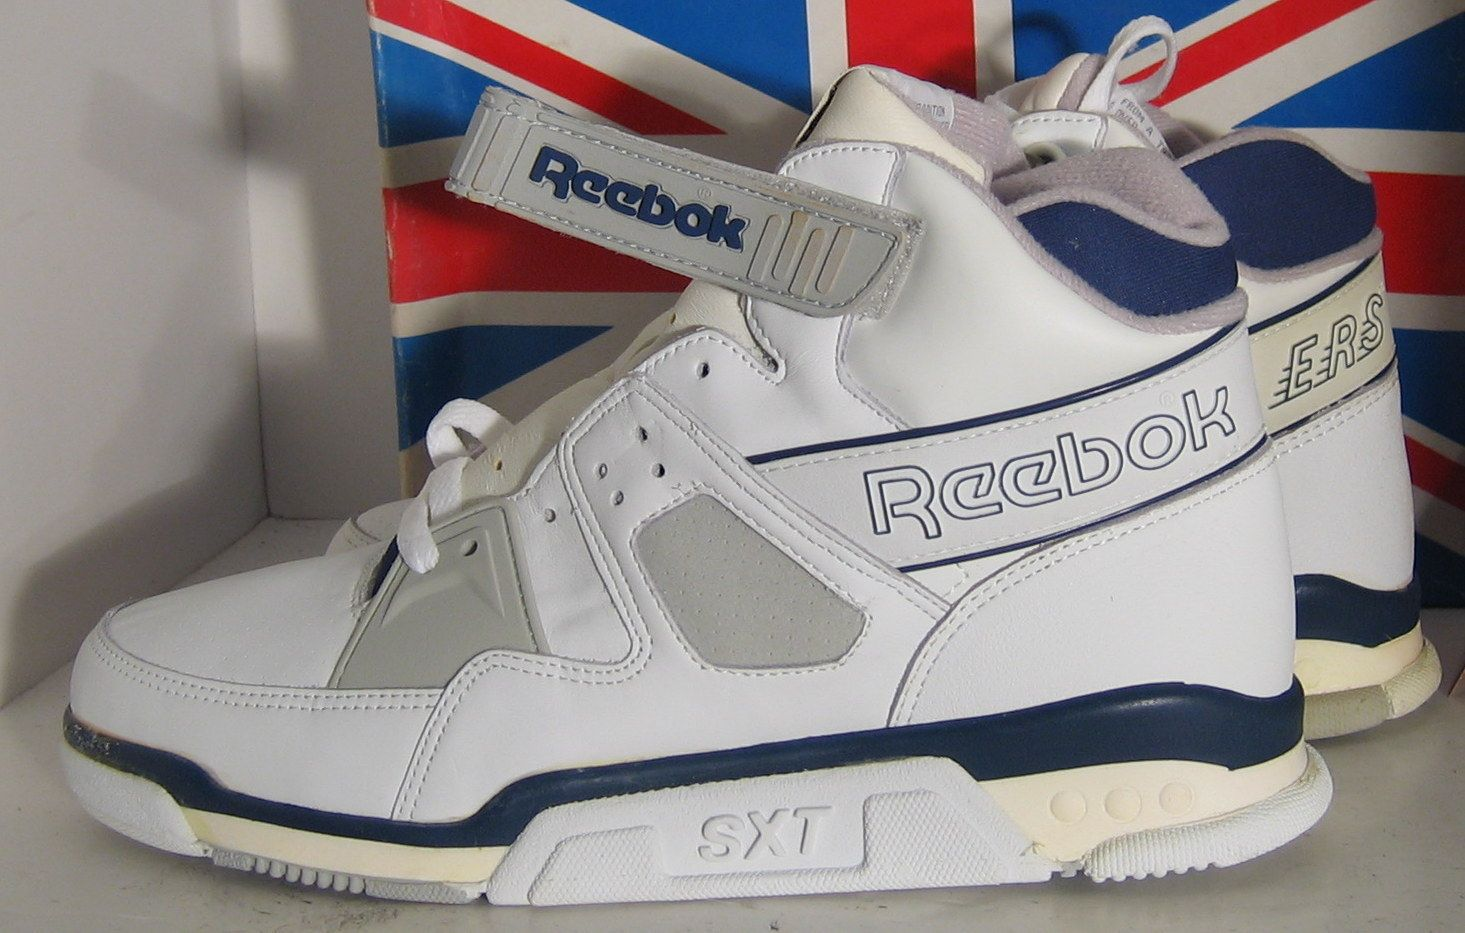 8229abe67 Reebok SXT Cross Training Shoe 1989